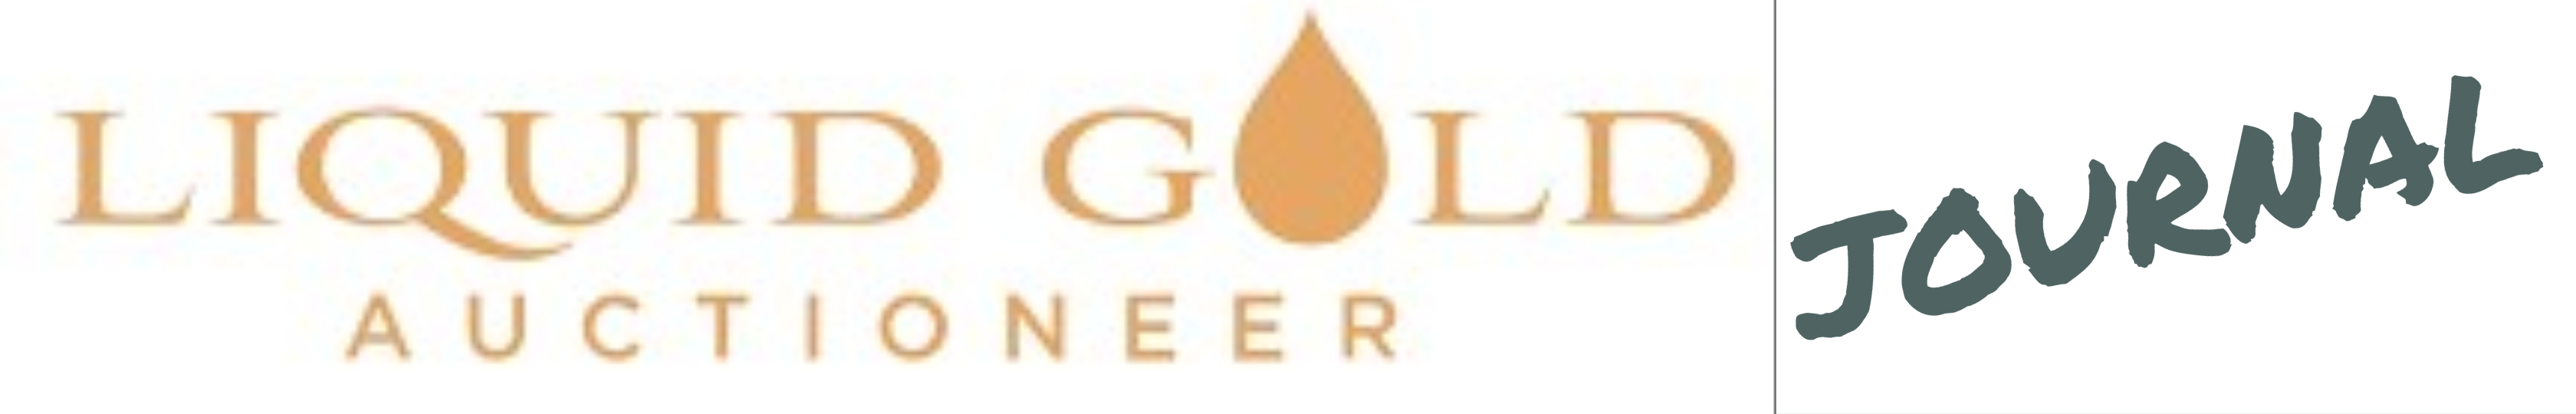 Liquid Gold Auctioneer logo